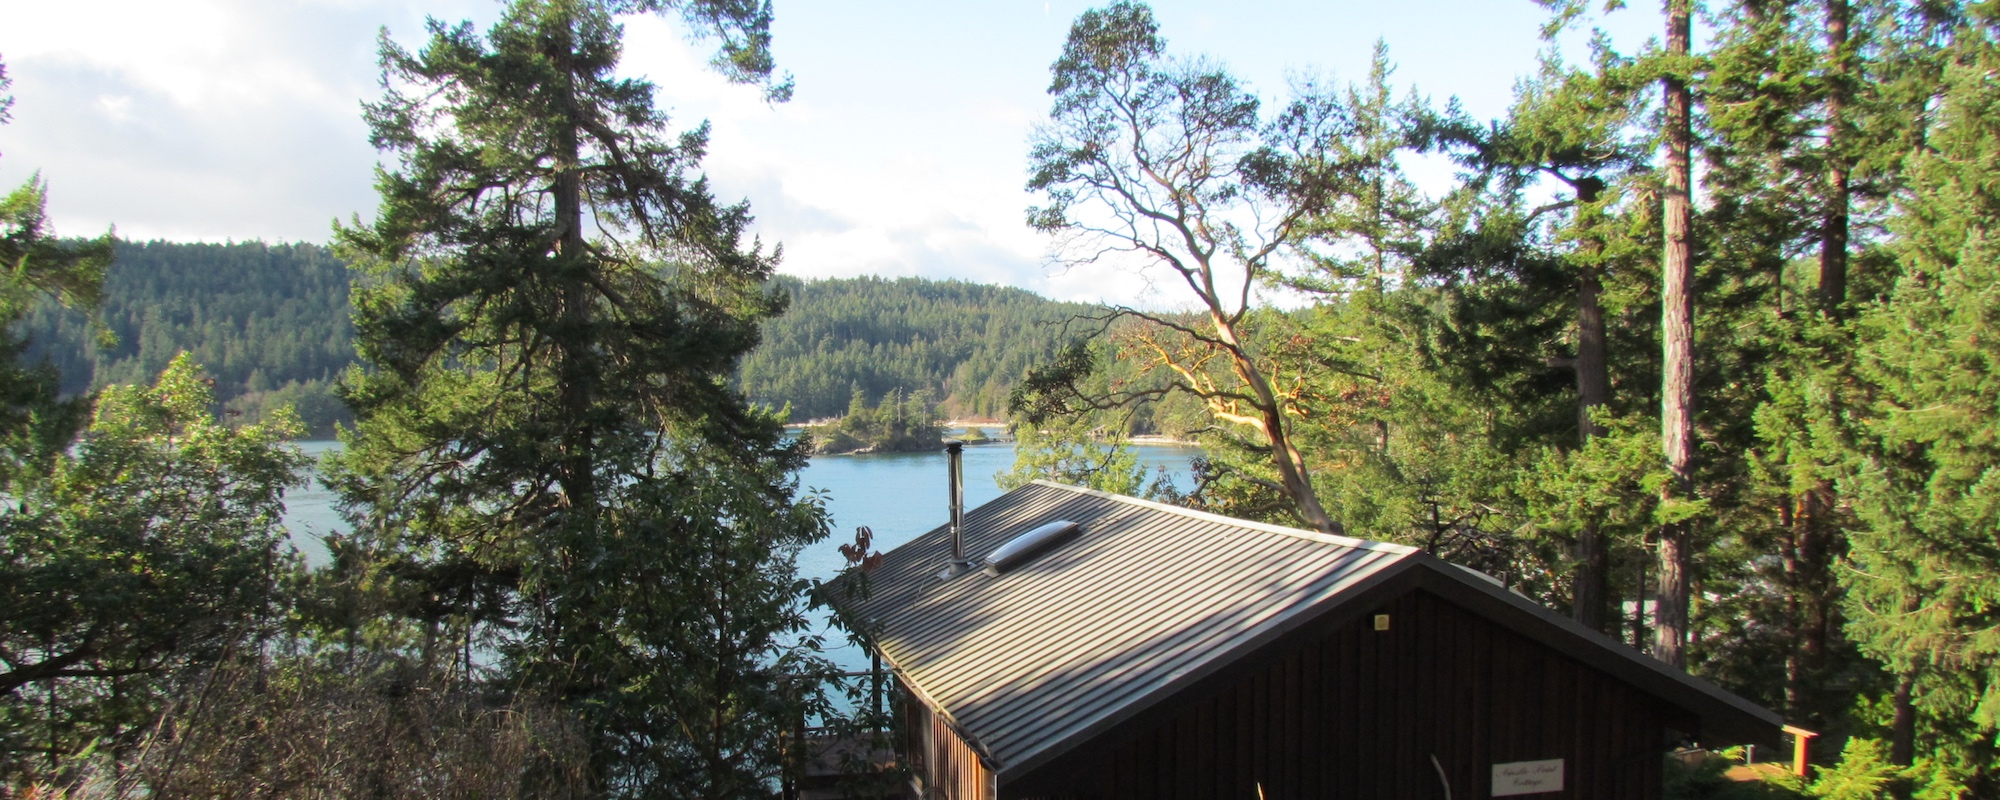 Ainslie Point Cottage vacation rental with ocean views on Pender Island